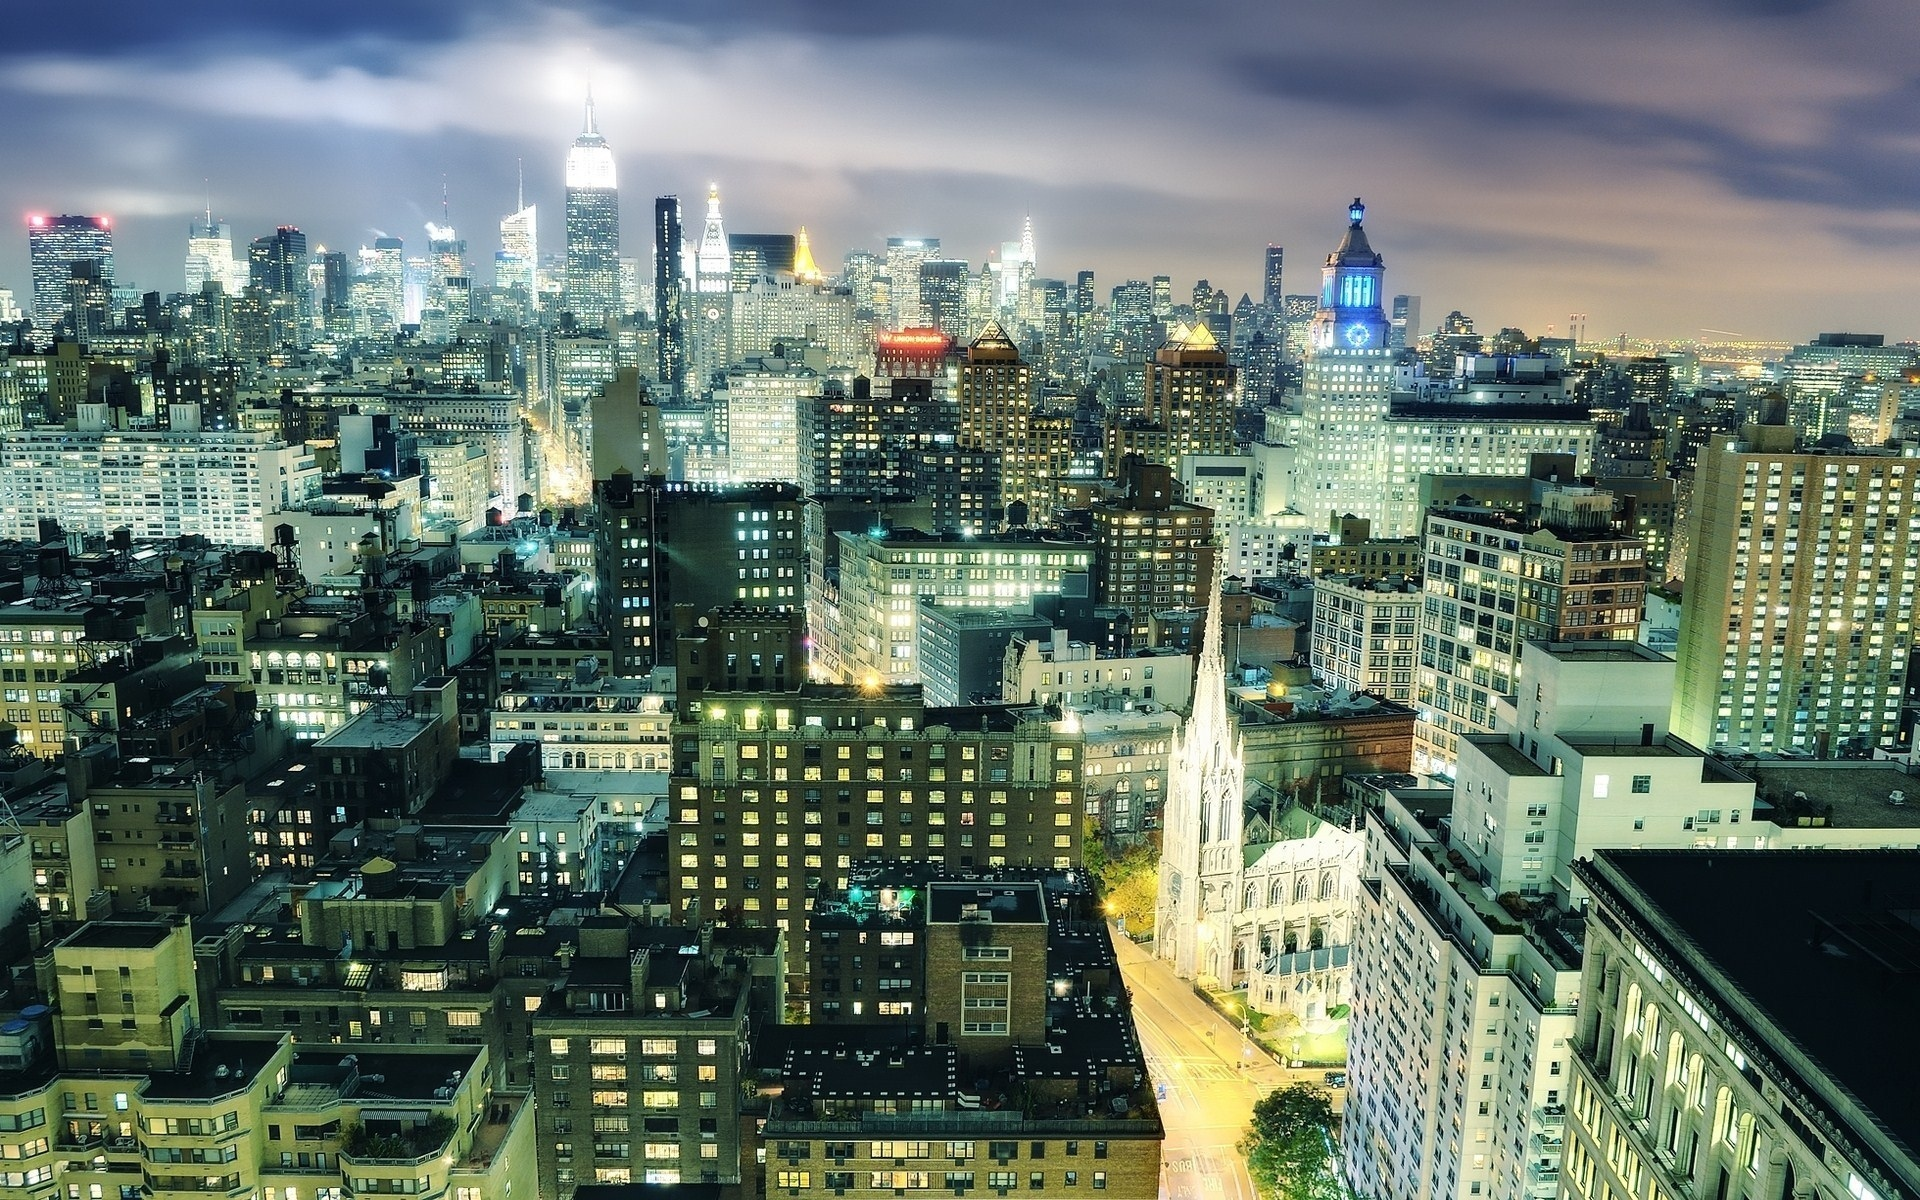 night, usa, new york city, midtown manhattan, nyc, огни, ночь, нью-йорк